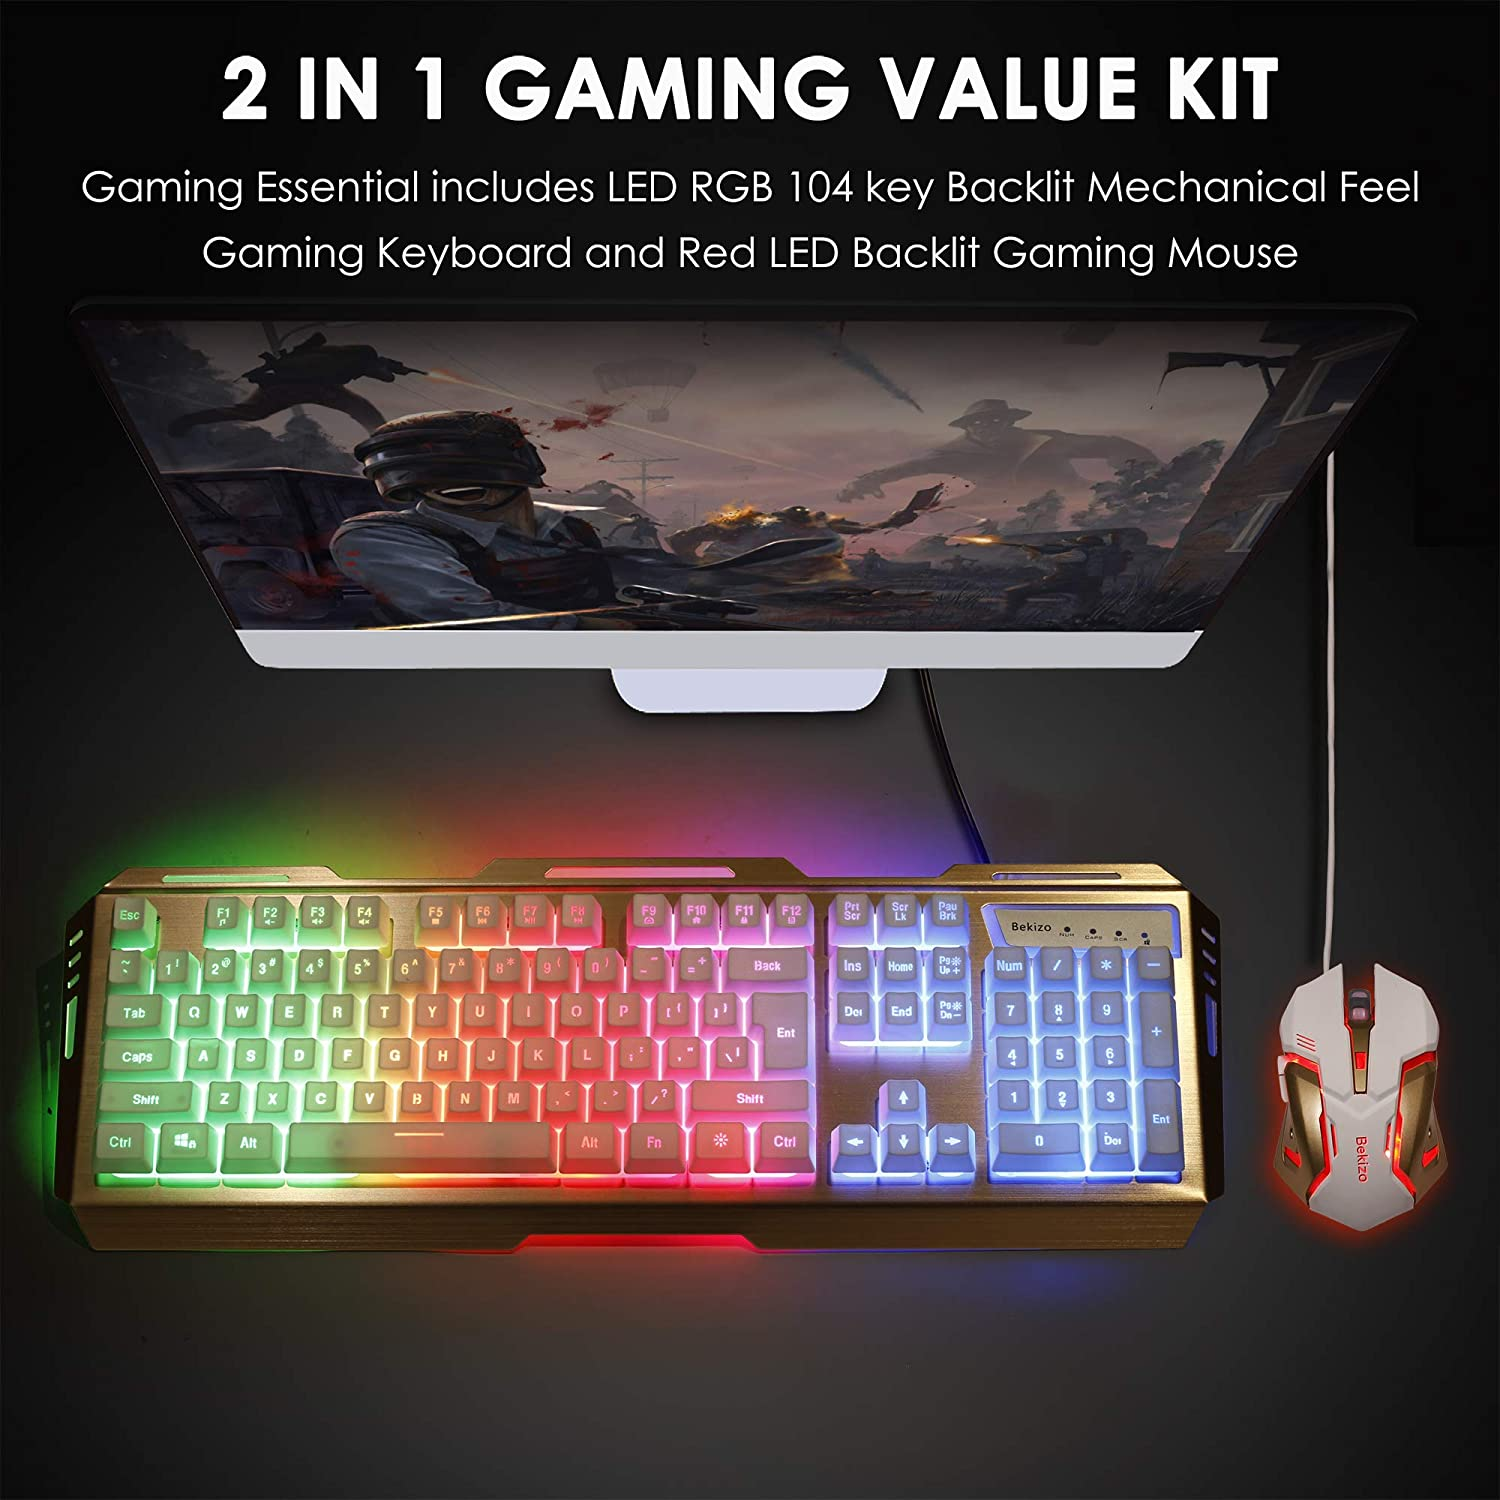 Rose Gold Gaming Keyboard Mouse Combo,Membrane Keyboard RGB Color Change Lighted Keyboard,PC Keyboard Computer Backlit USB Keyboard,Wired Gaming Keyboard,for Xbox One PS4 Game Gamer